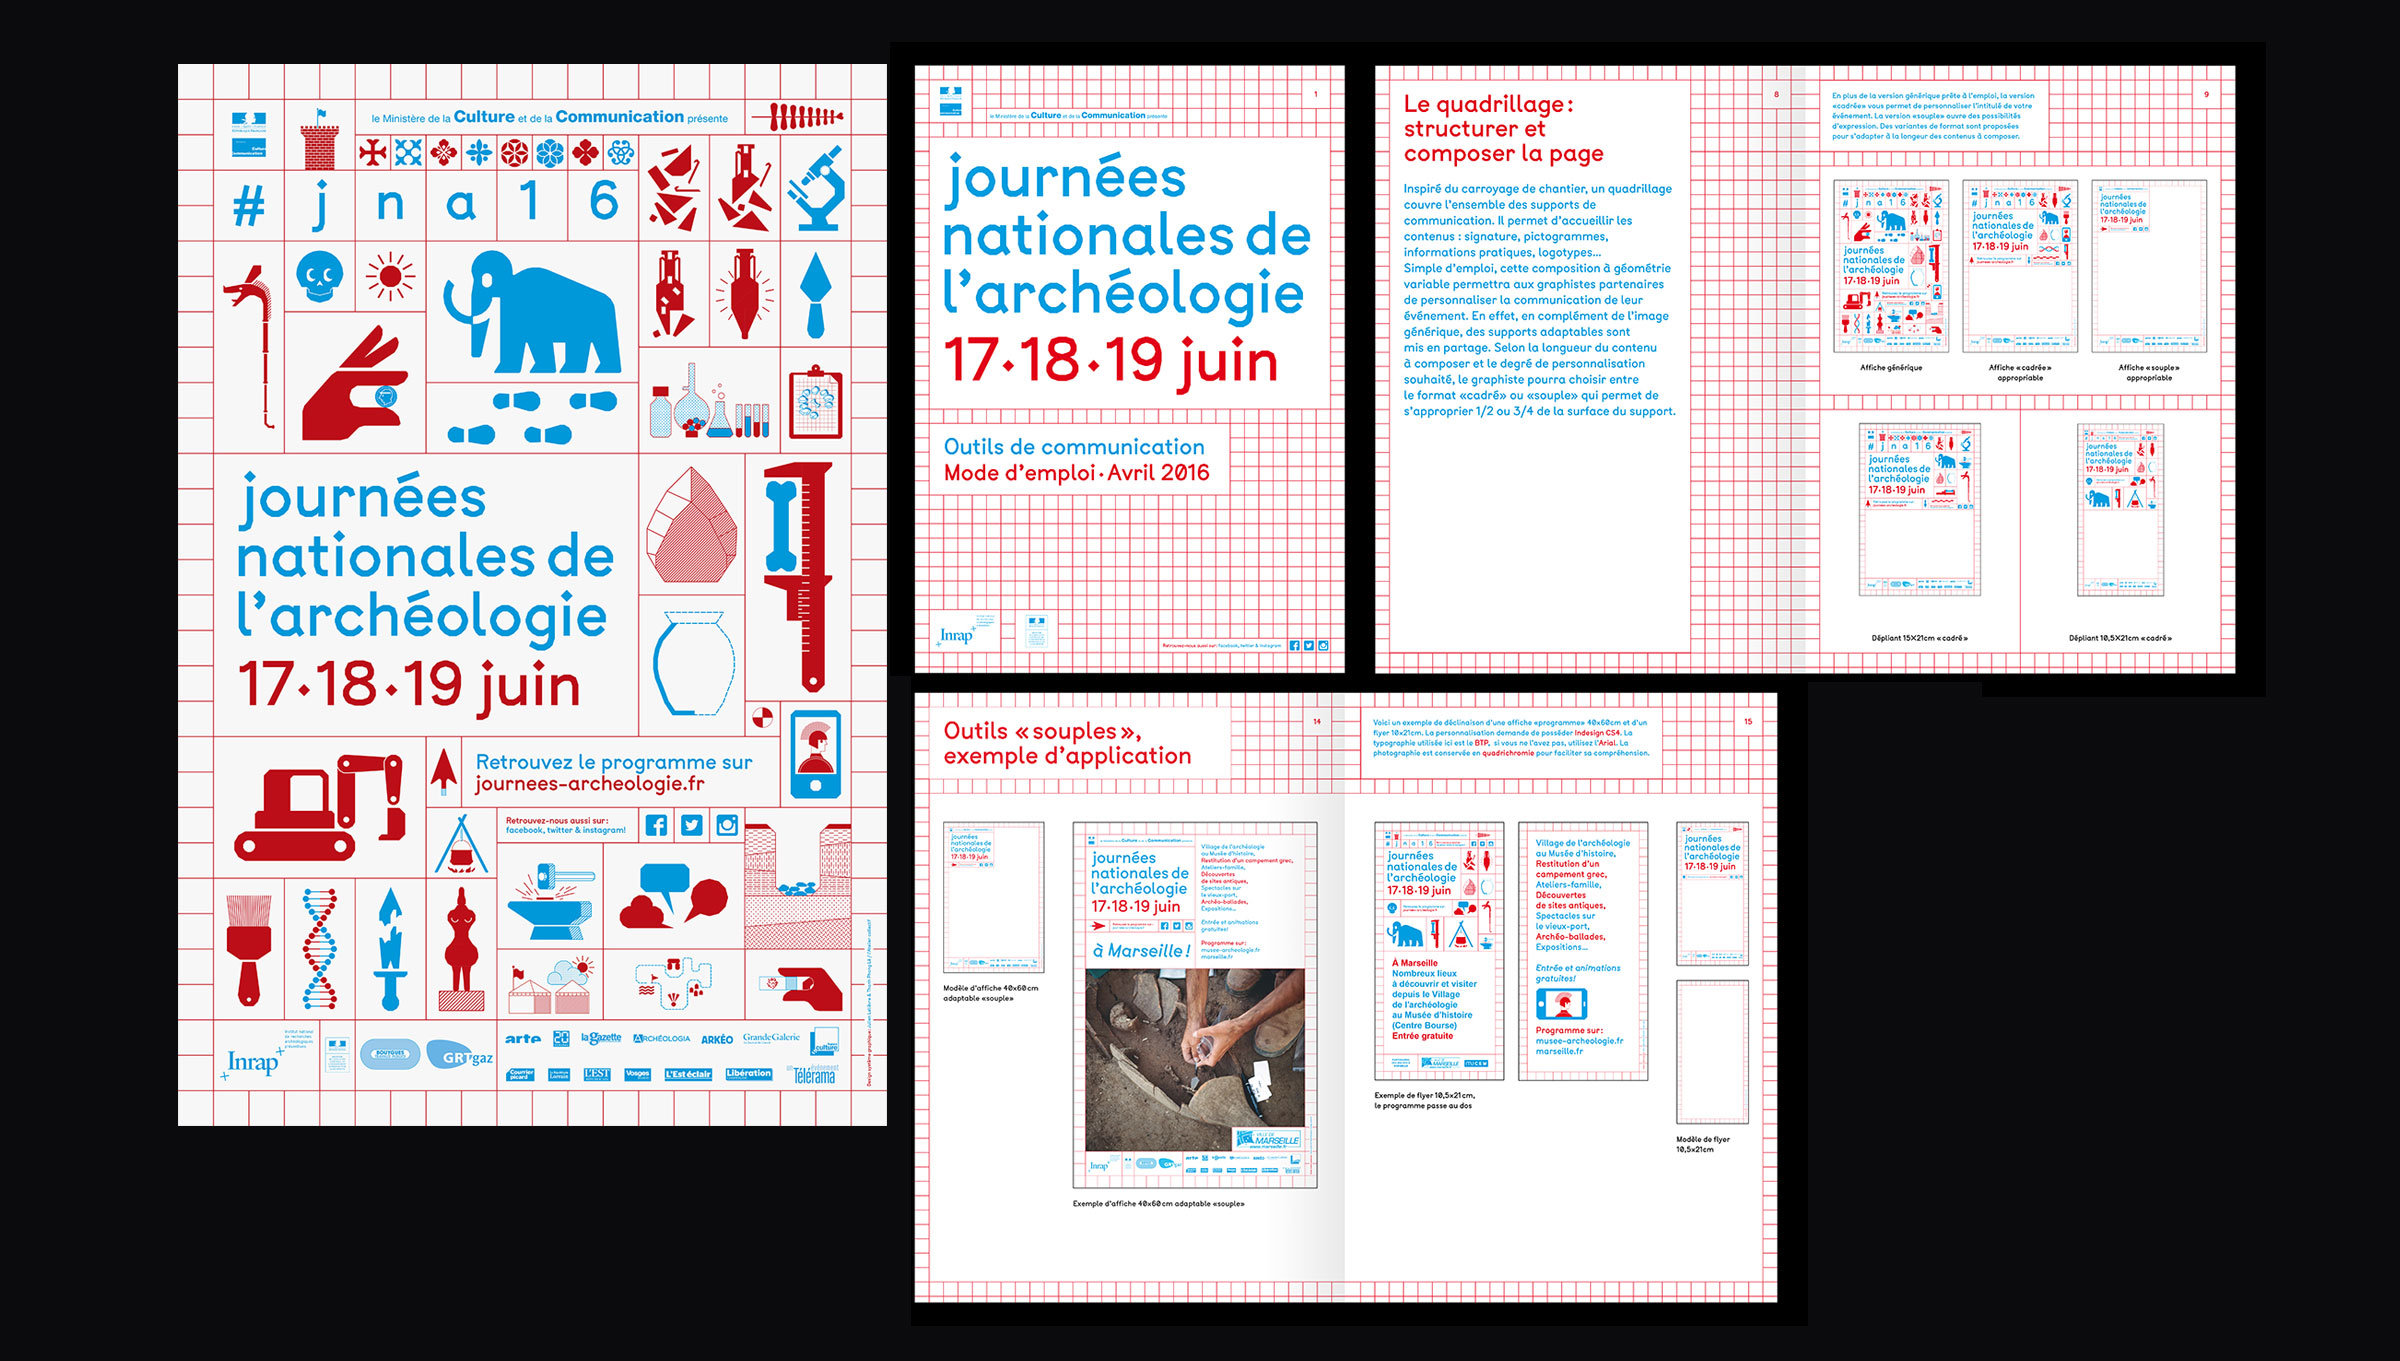 julien-lelievre-journees-nationales-de-l-archeologie-2016-interview-index-grafik